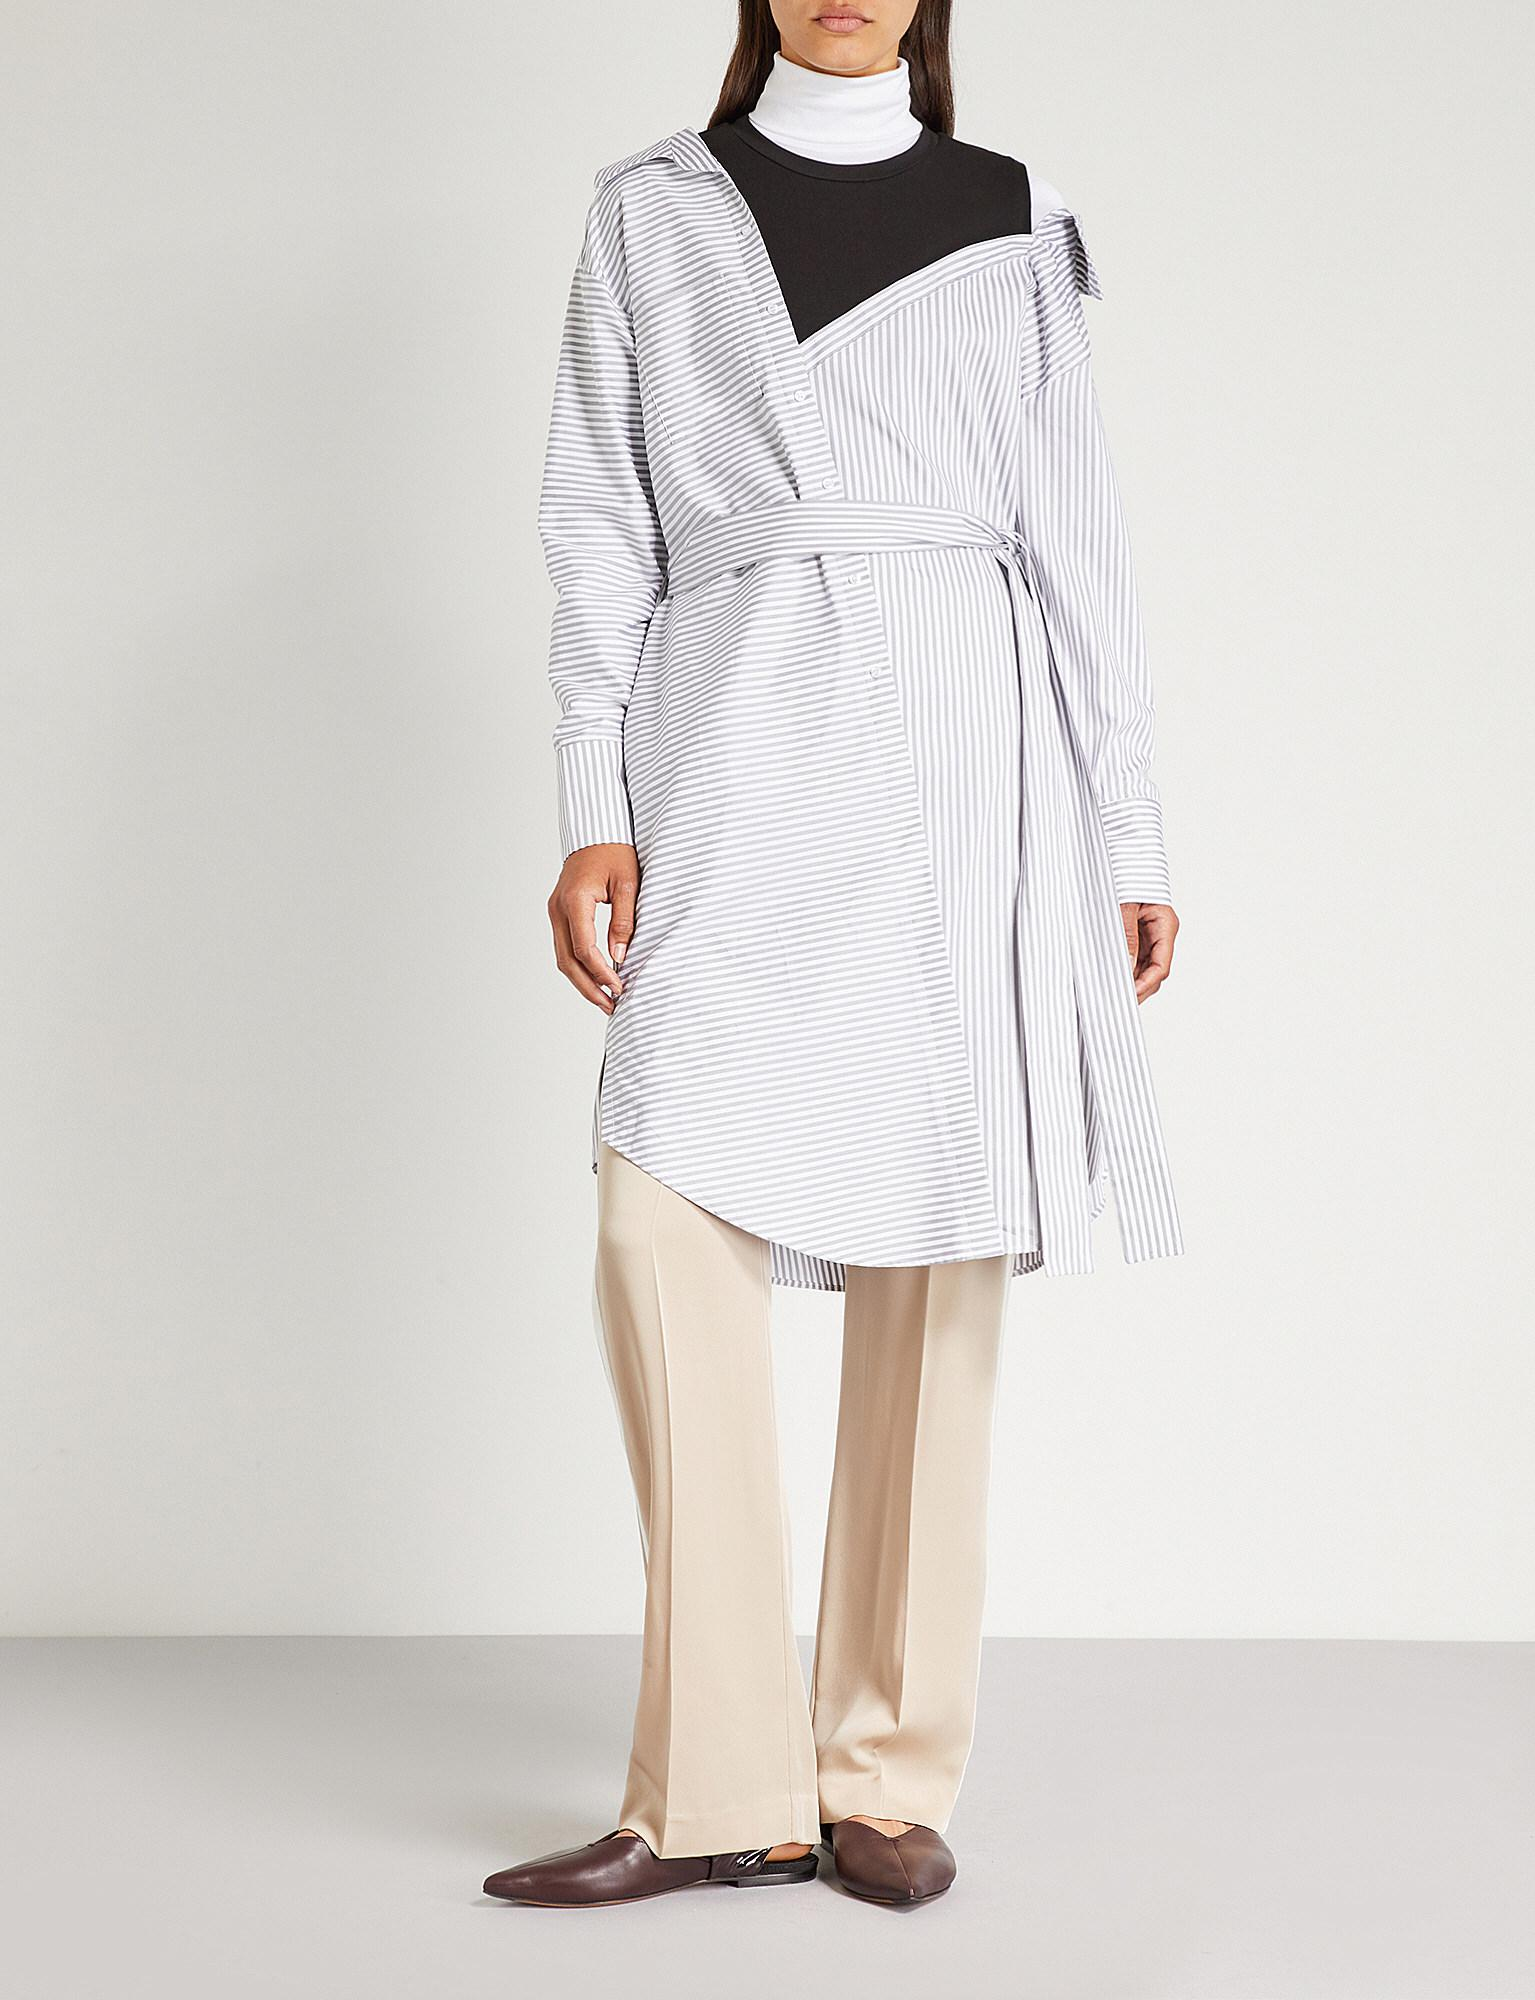 Shirt Deconstructed Riava White Lyst In Cotton Maje Dress 4FqWZnA